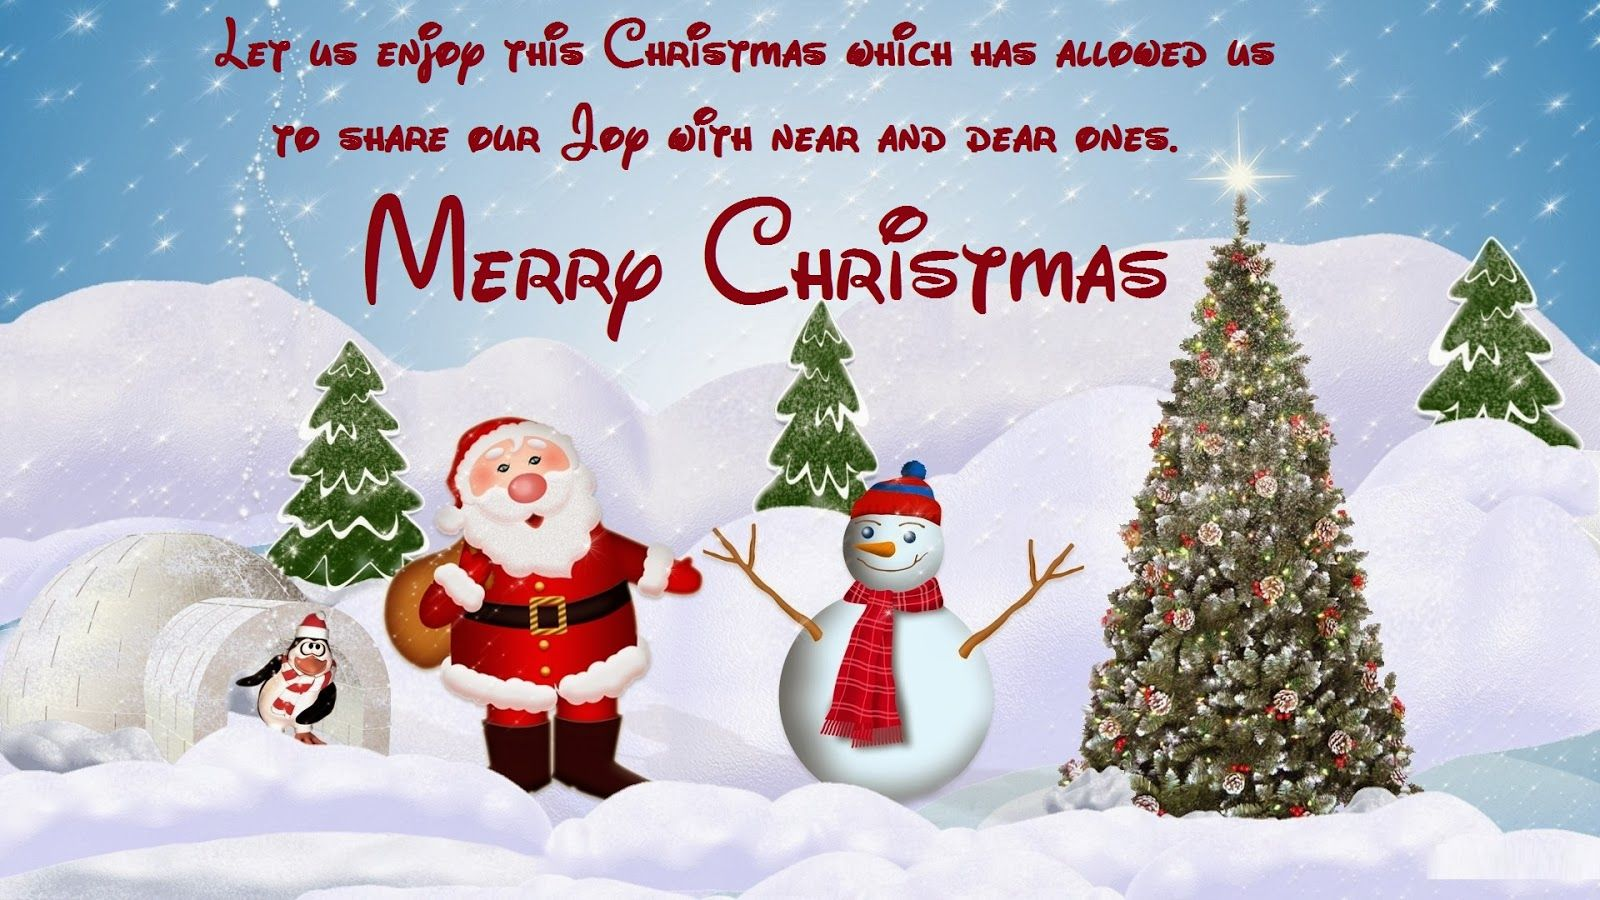 Here We Are Providing Merry Christmas Images For Social Media For